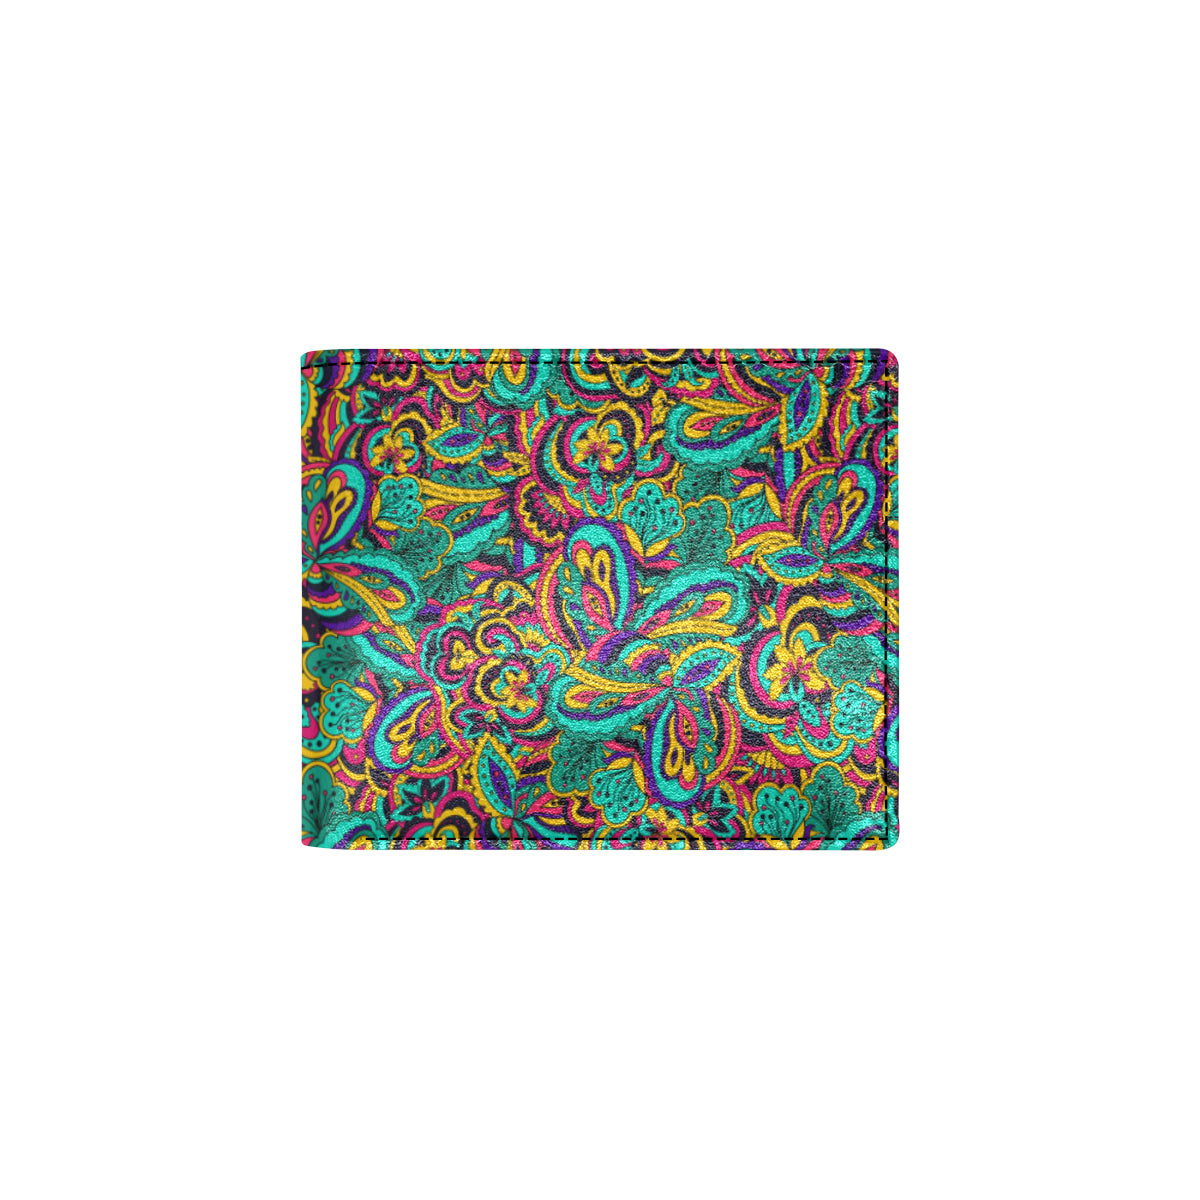 Psychedelic Trippy Floral Design Men ID Card Wallet